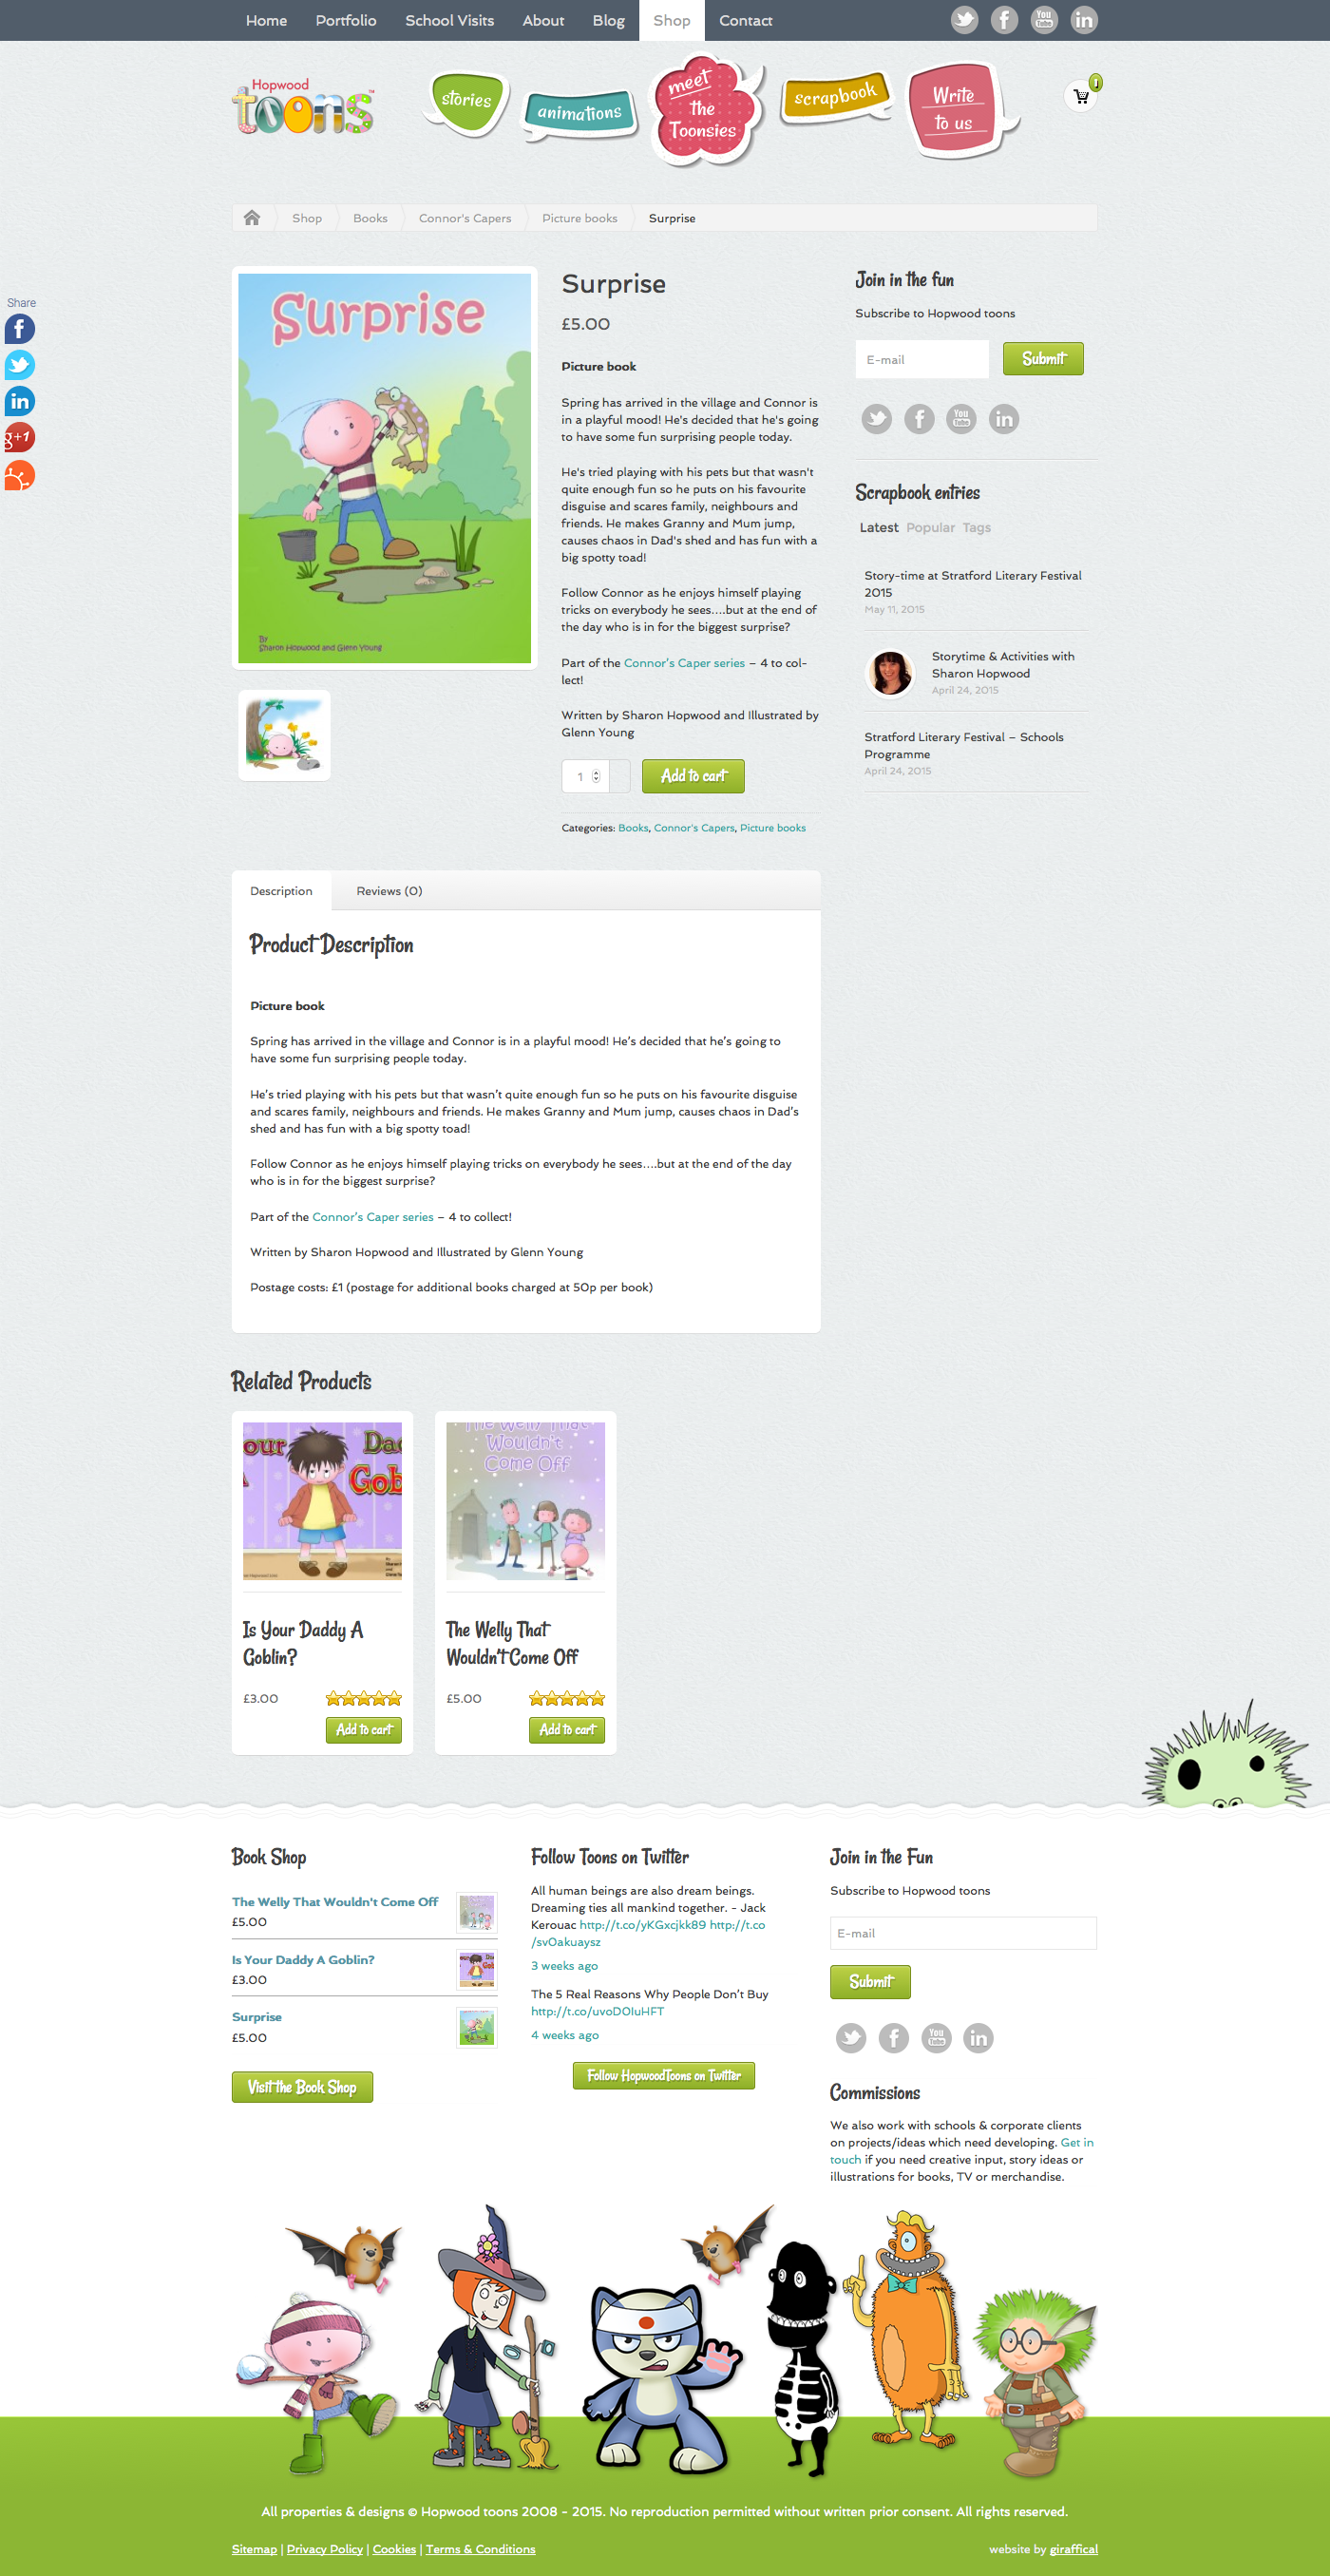 Hopwood Toons Website Redesign - Product Page